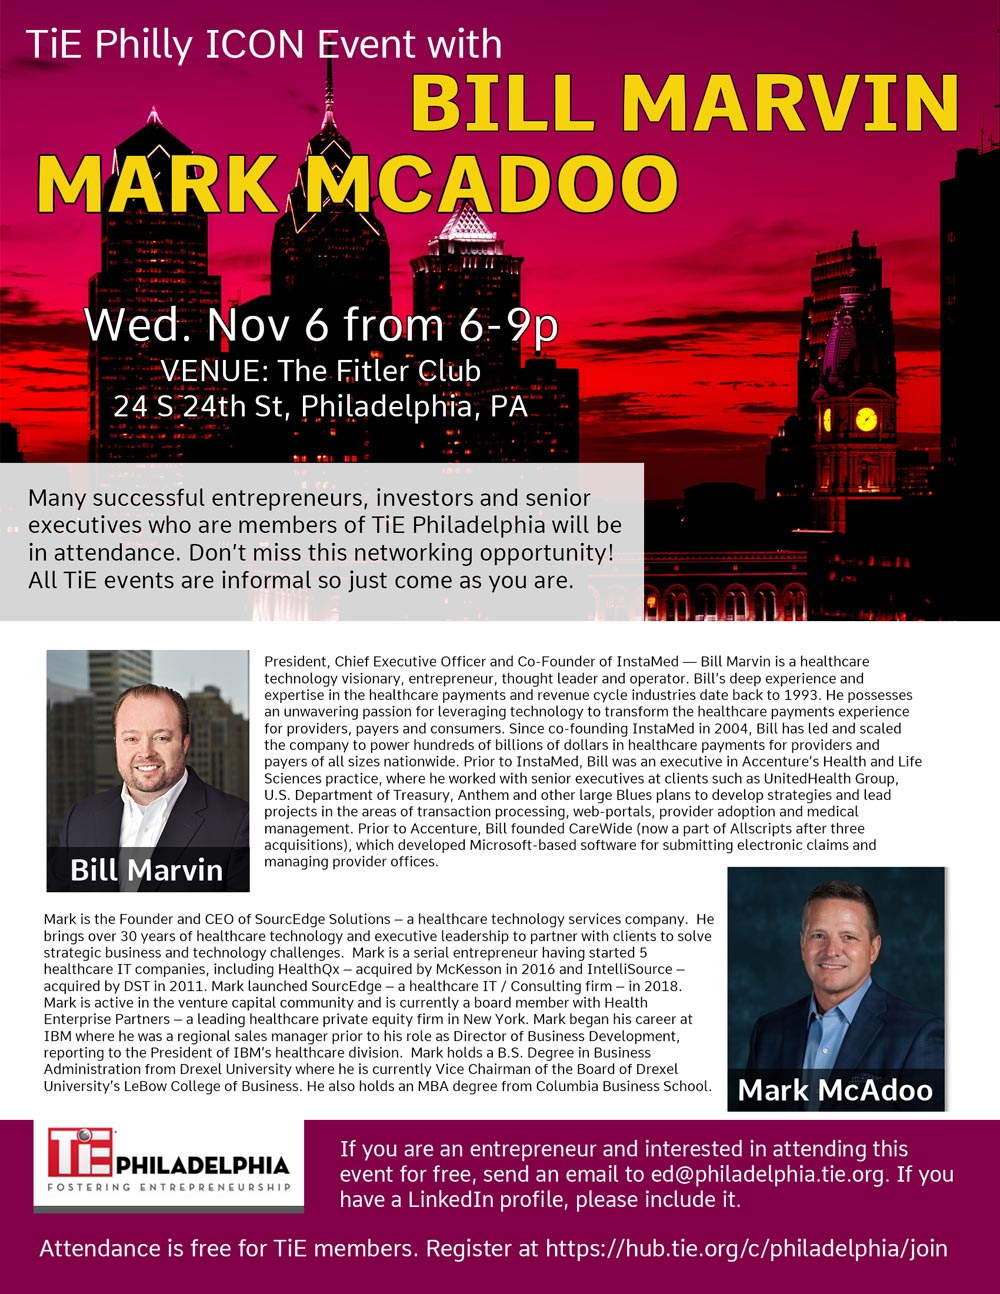 TIE flier web 1 - Icon Event with Bill Marvin & Mark McAdoo